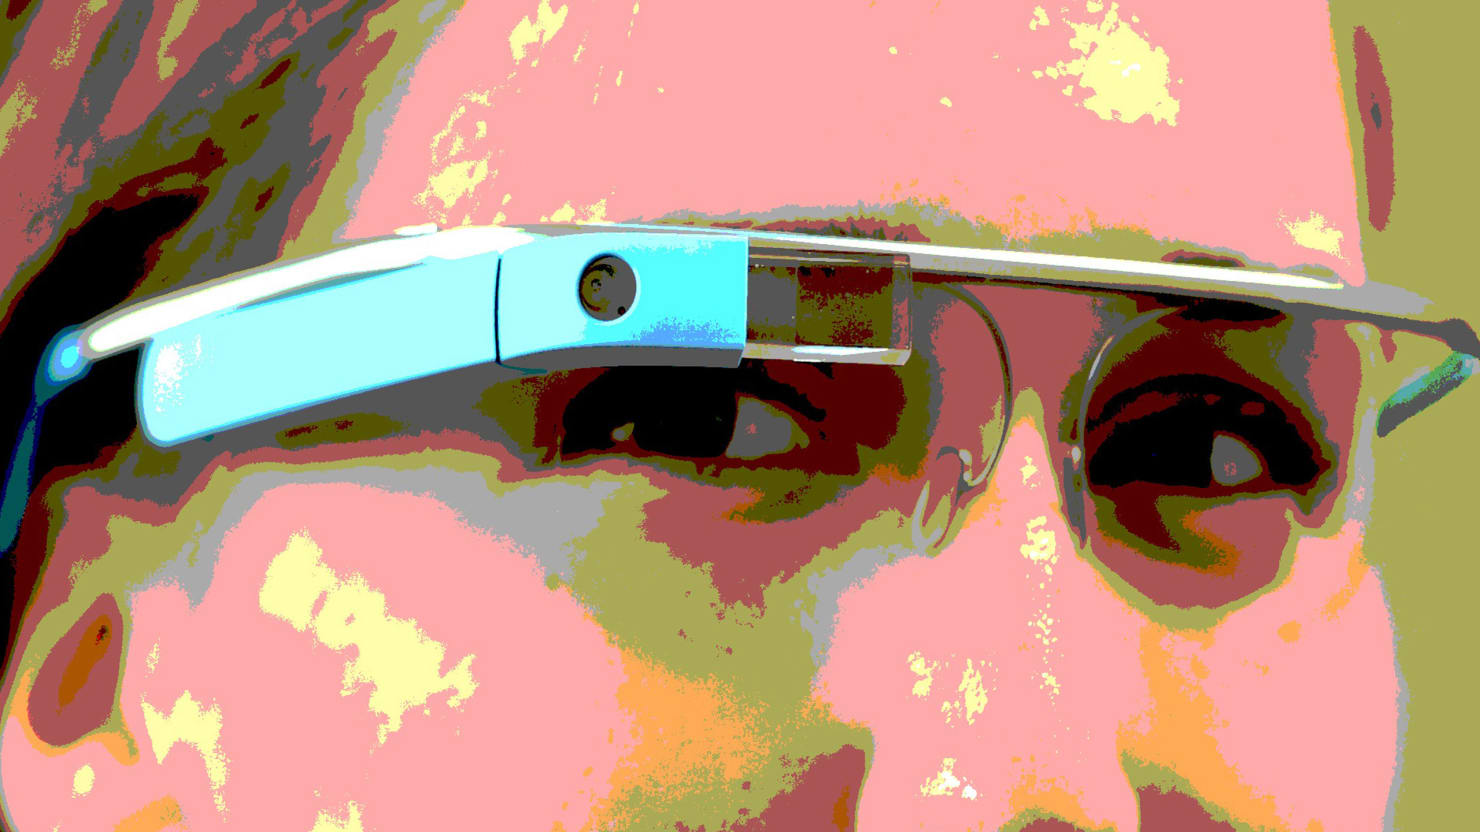 David Datuna Creates Google Glass Art for Art Basel Miami Beach